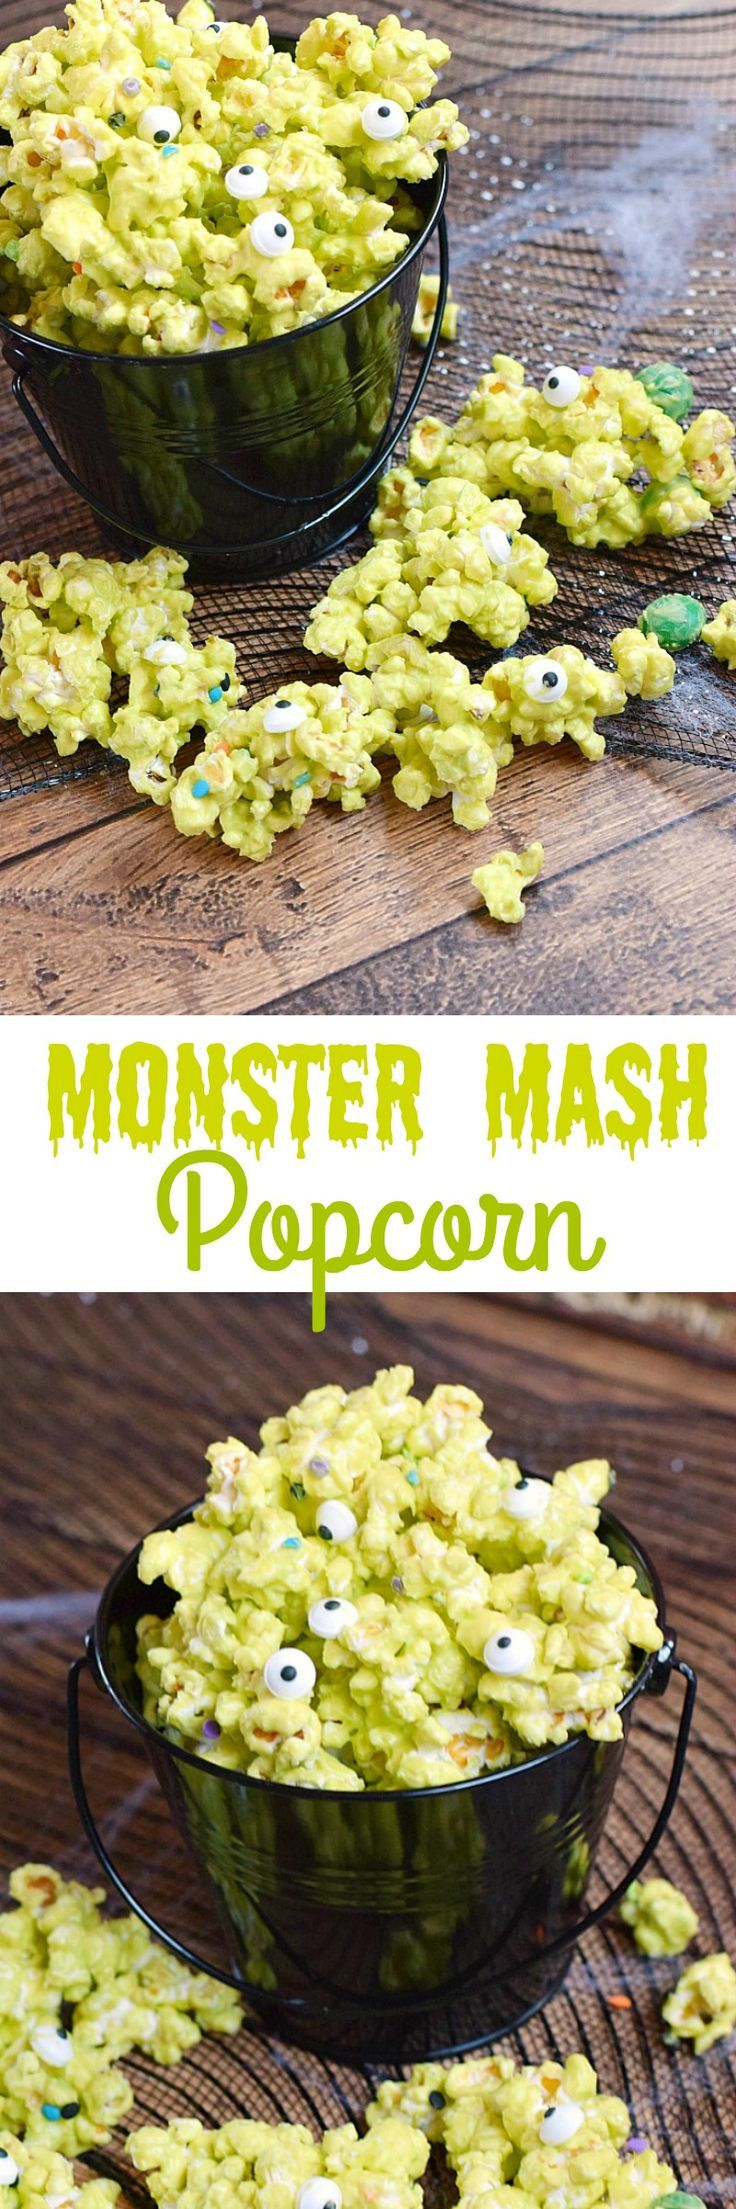 Surprise your little ghosts and goblins with this fun Monster Mash Popcorn and watch them squeal in delight | cookingwithcurls.com